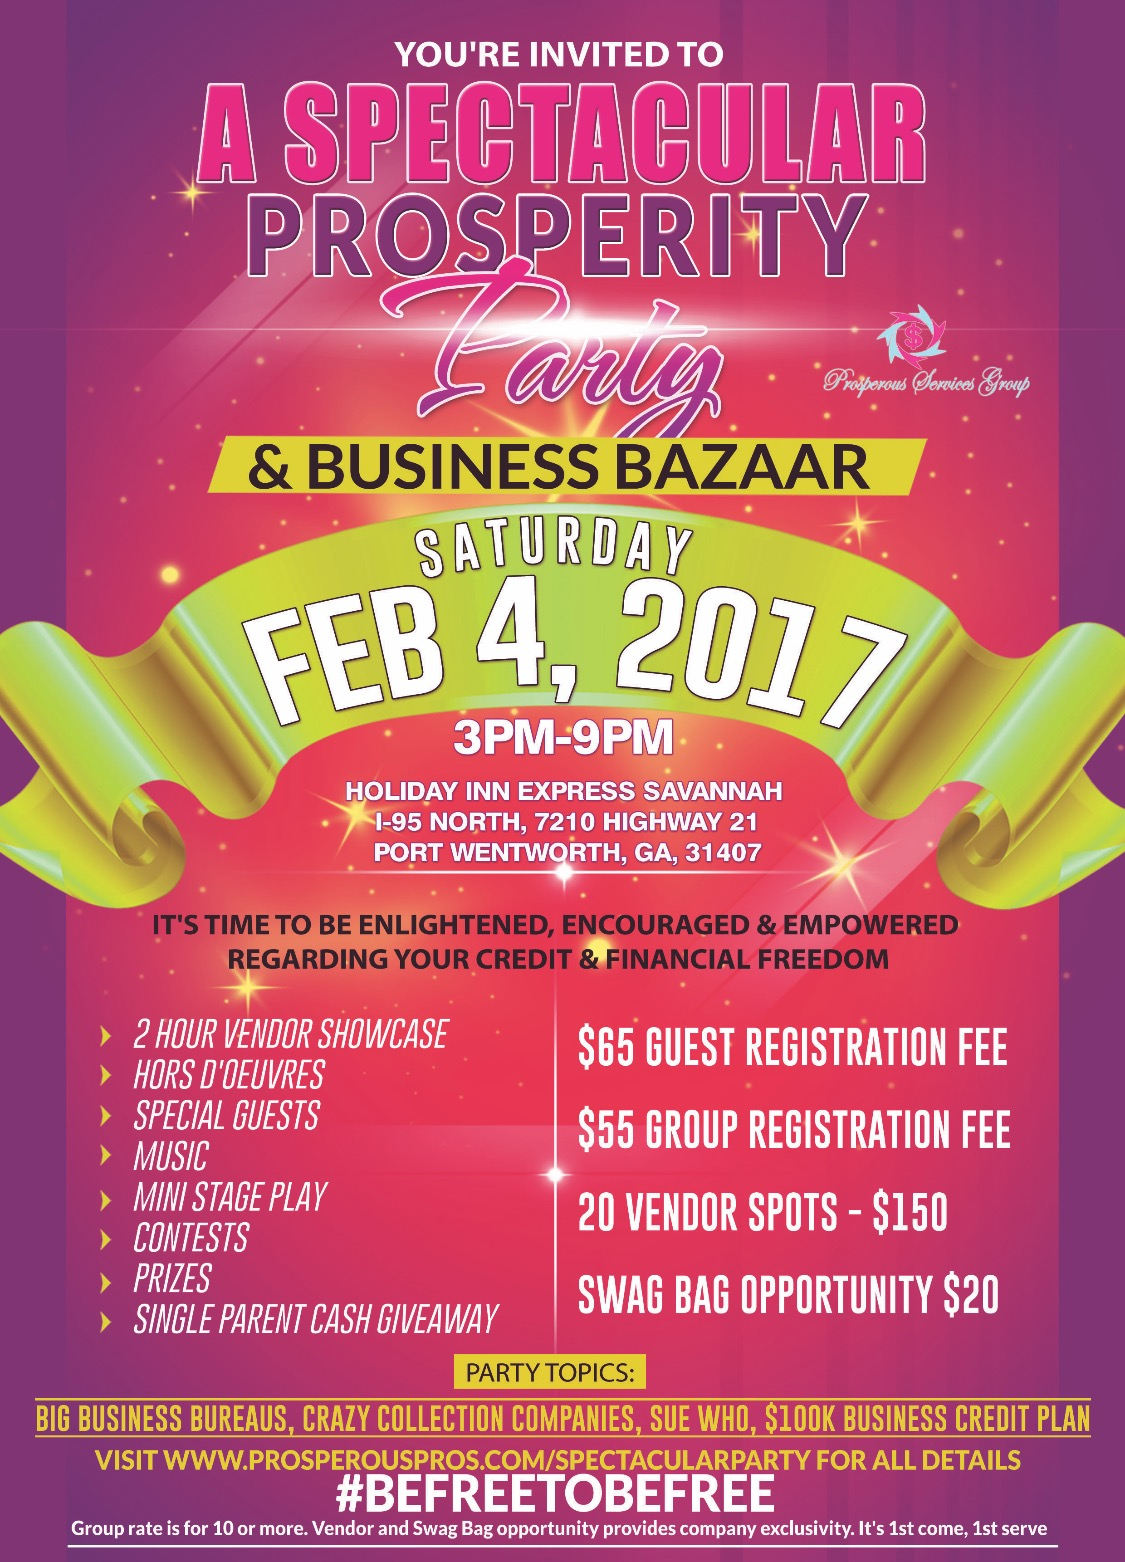 A Spectacular Prosperity Party & Business Bazaar